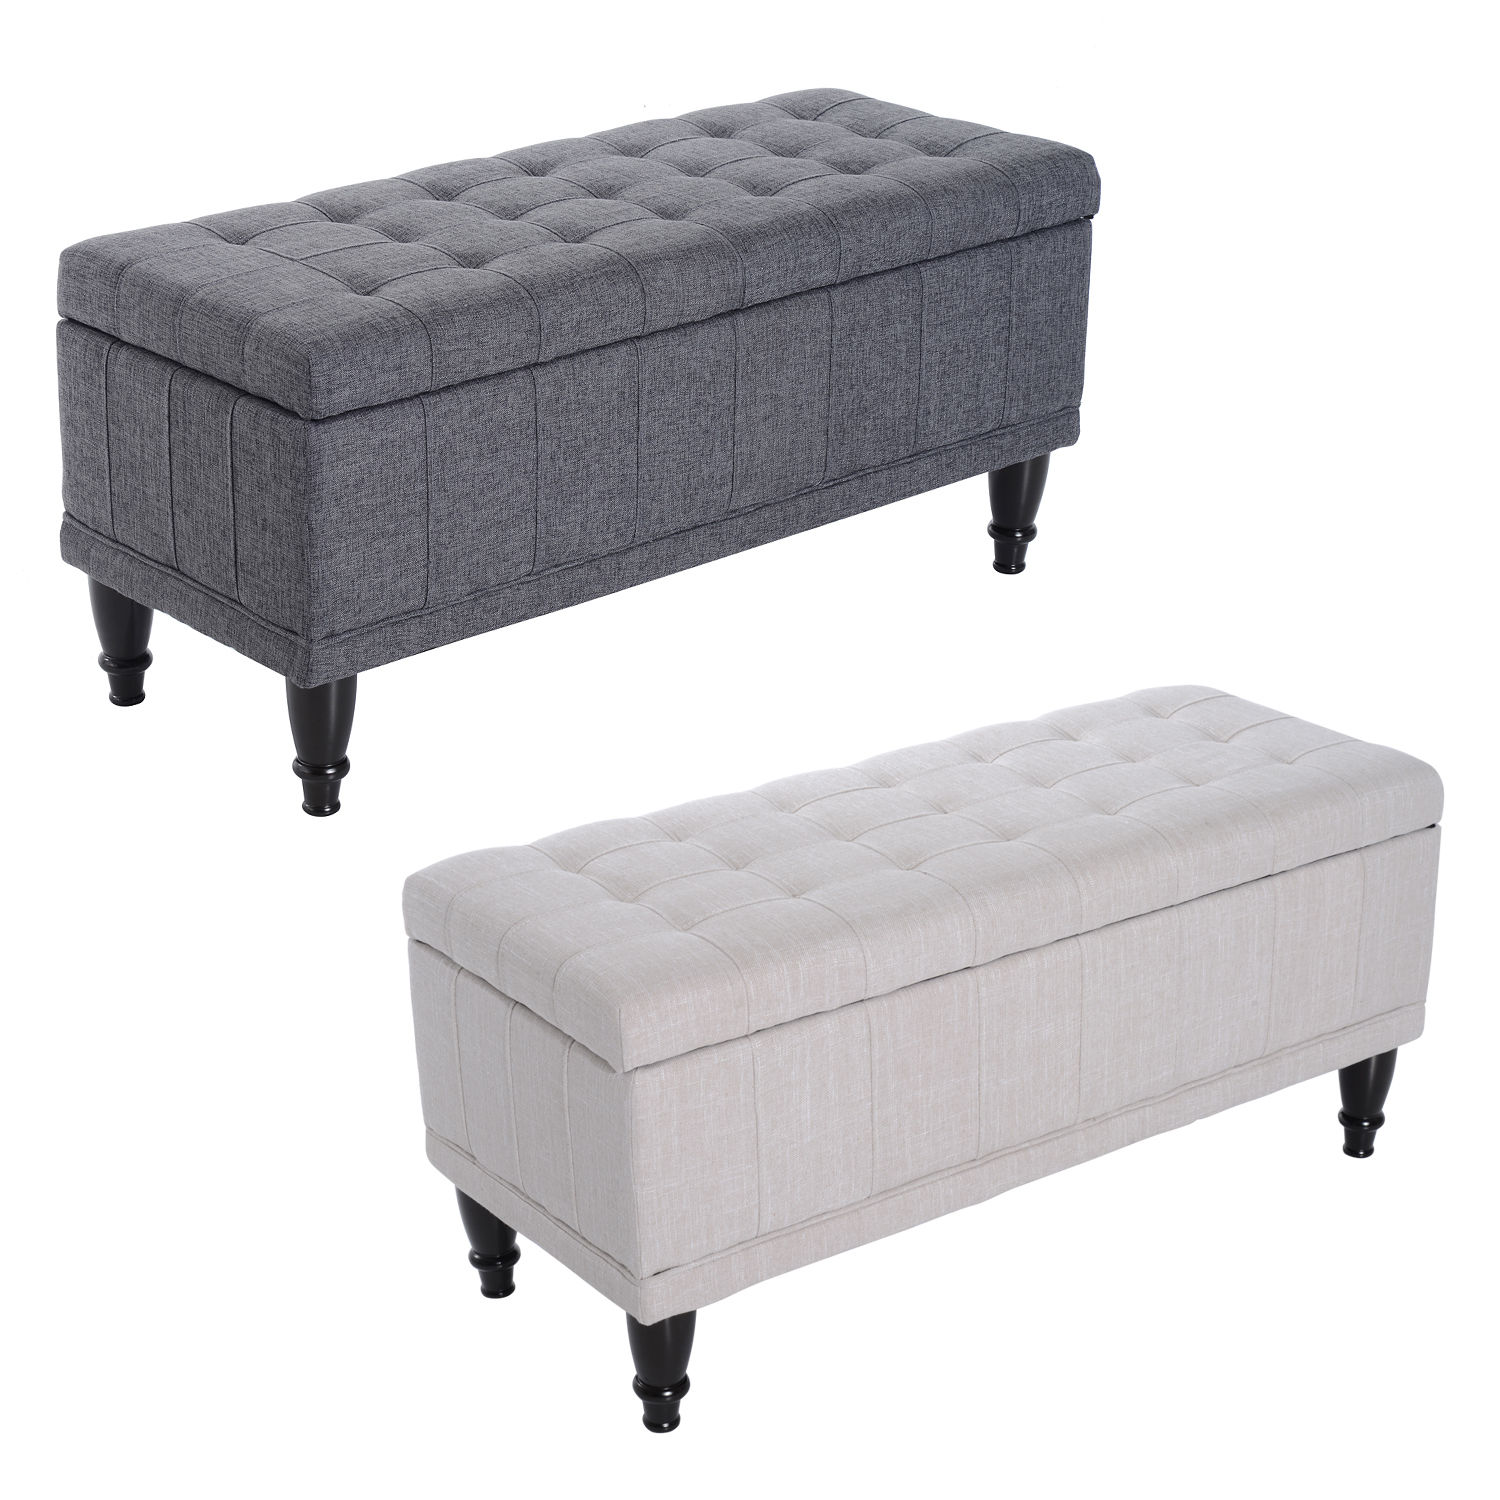 Groovy Details About 42 Lift Top Storage Ottoman Tufted Fabric Shoe Bench Footrest Stool Seat Andrewgaddart Wooden Chair Designs For Living Room Andrewgaddartcom